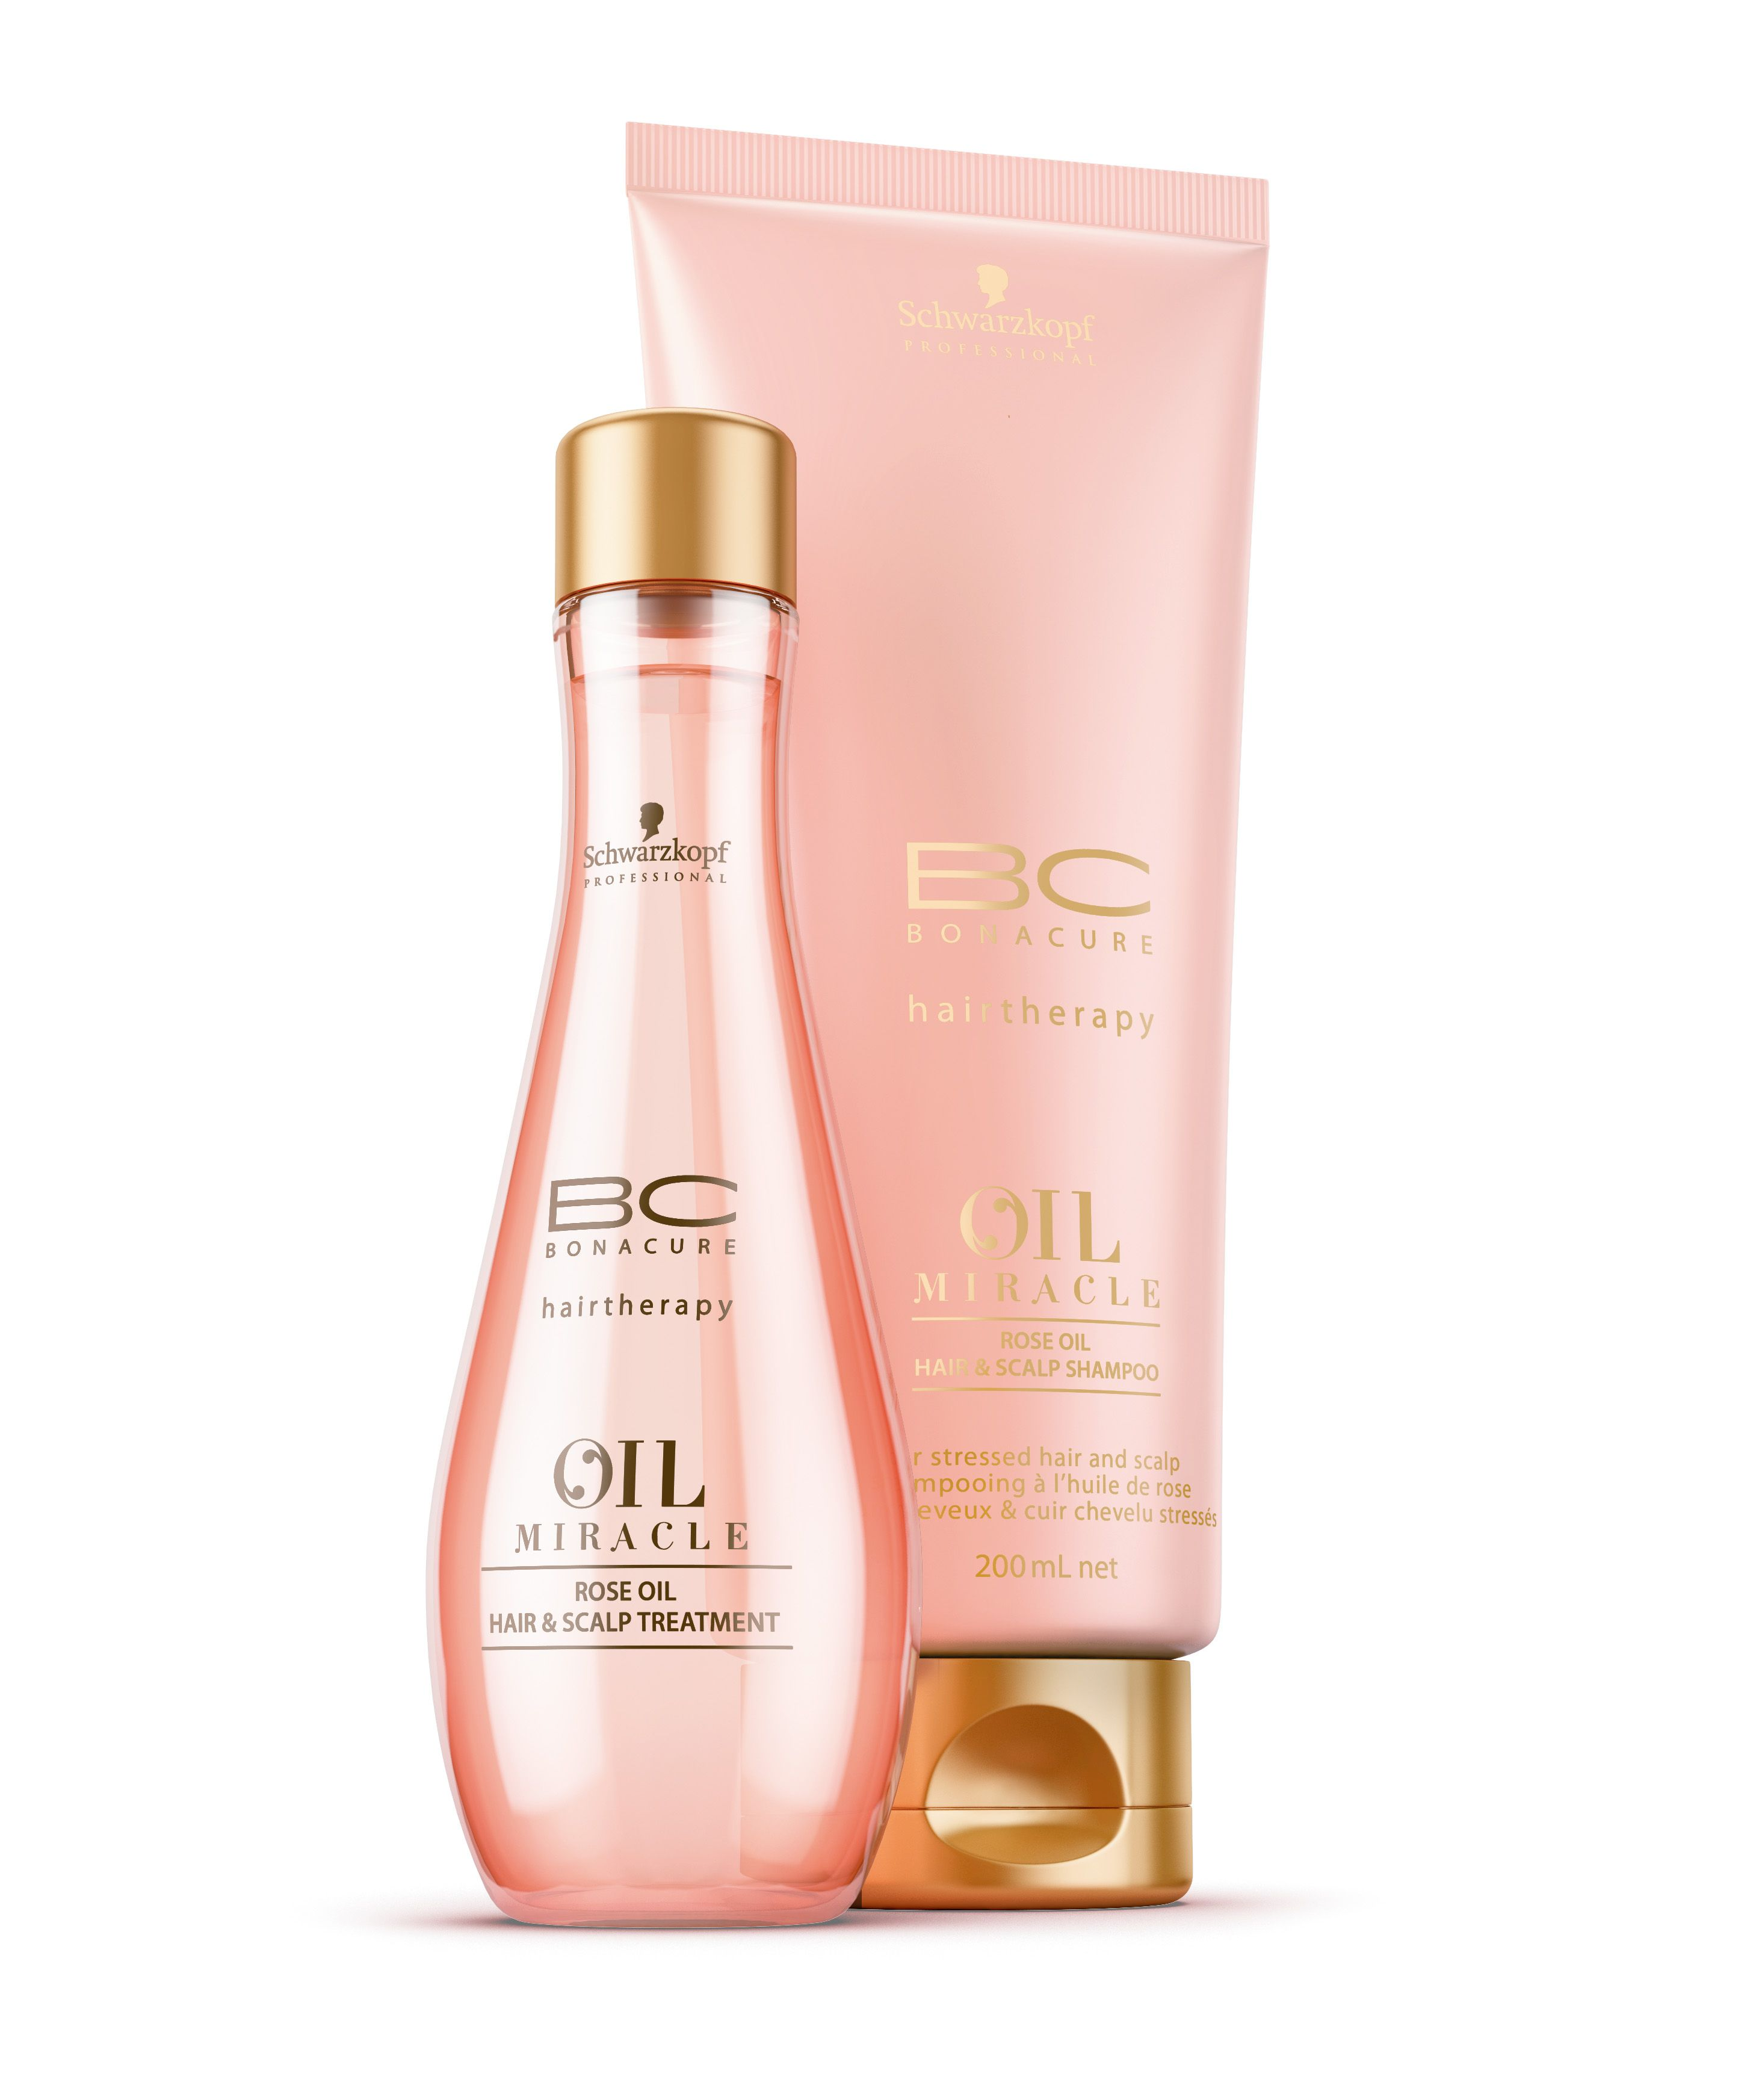 Schwarzkopf color ultimate online kaufen - Schwarzkopf Professional Bc Hairtherapy Oil Miracle Rose Oil